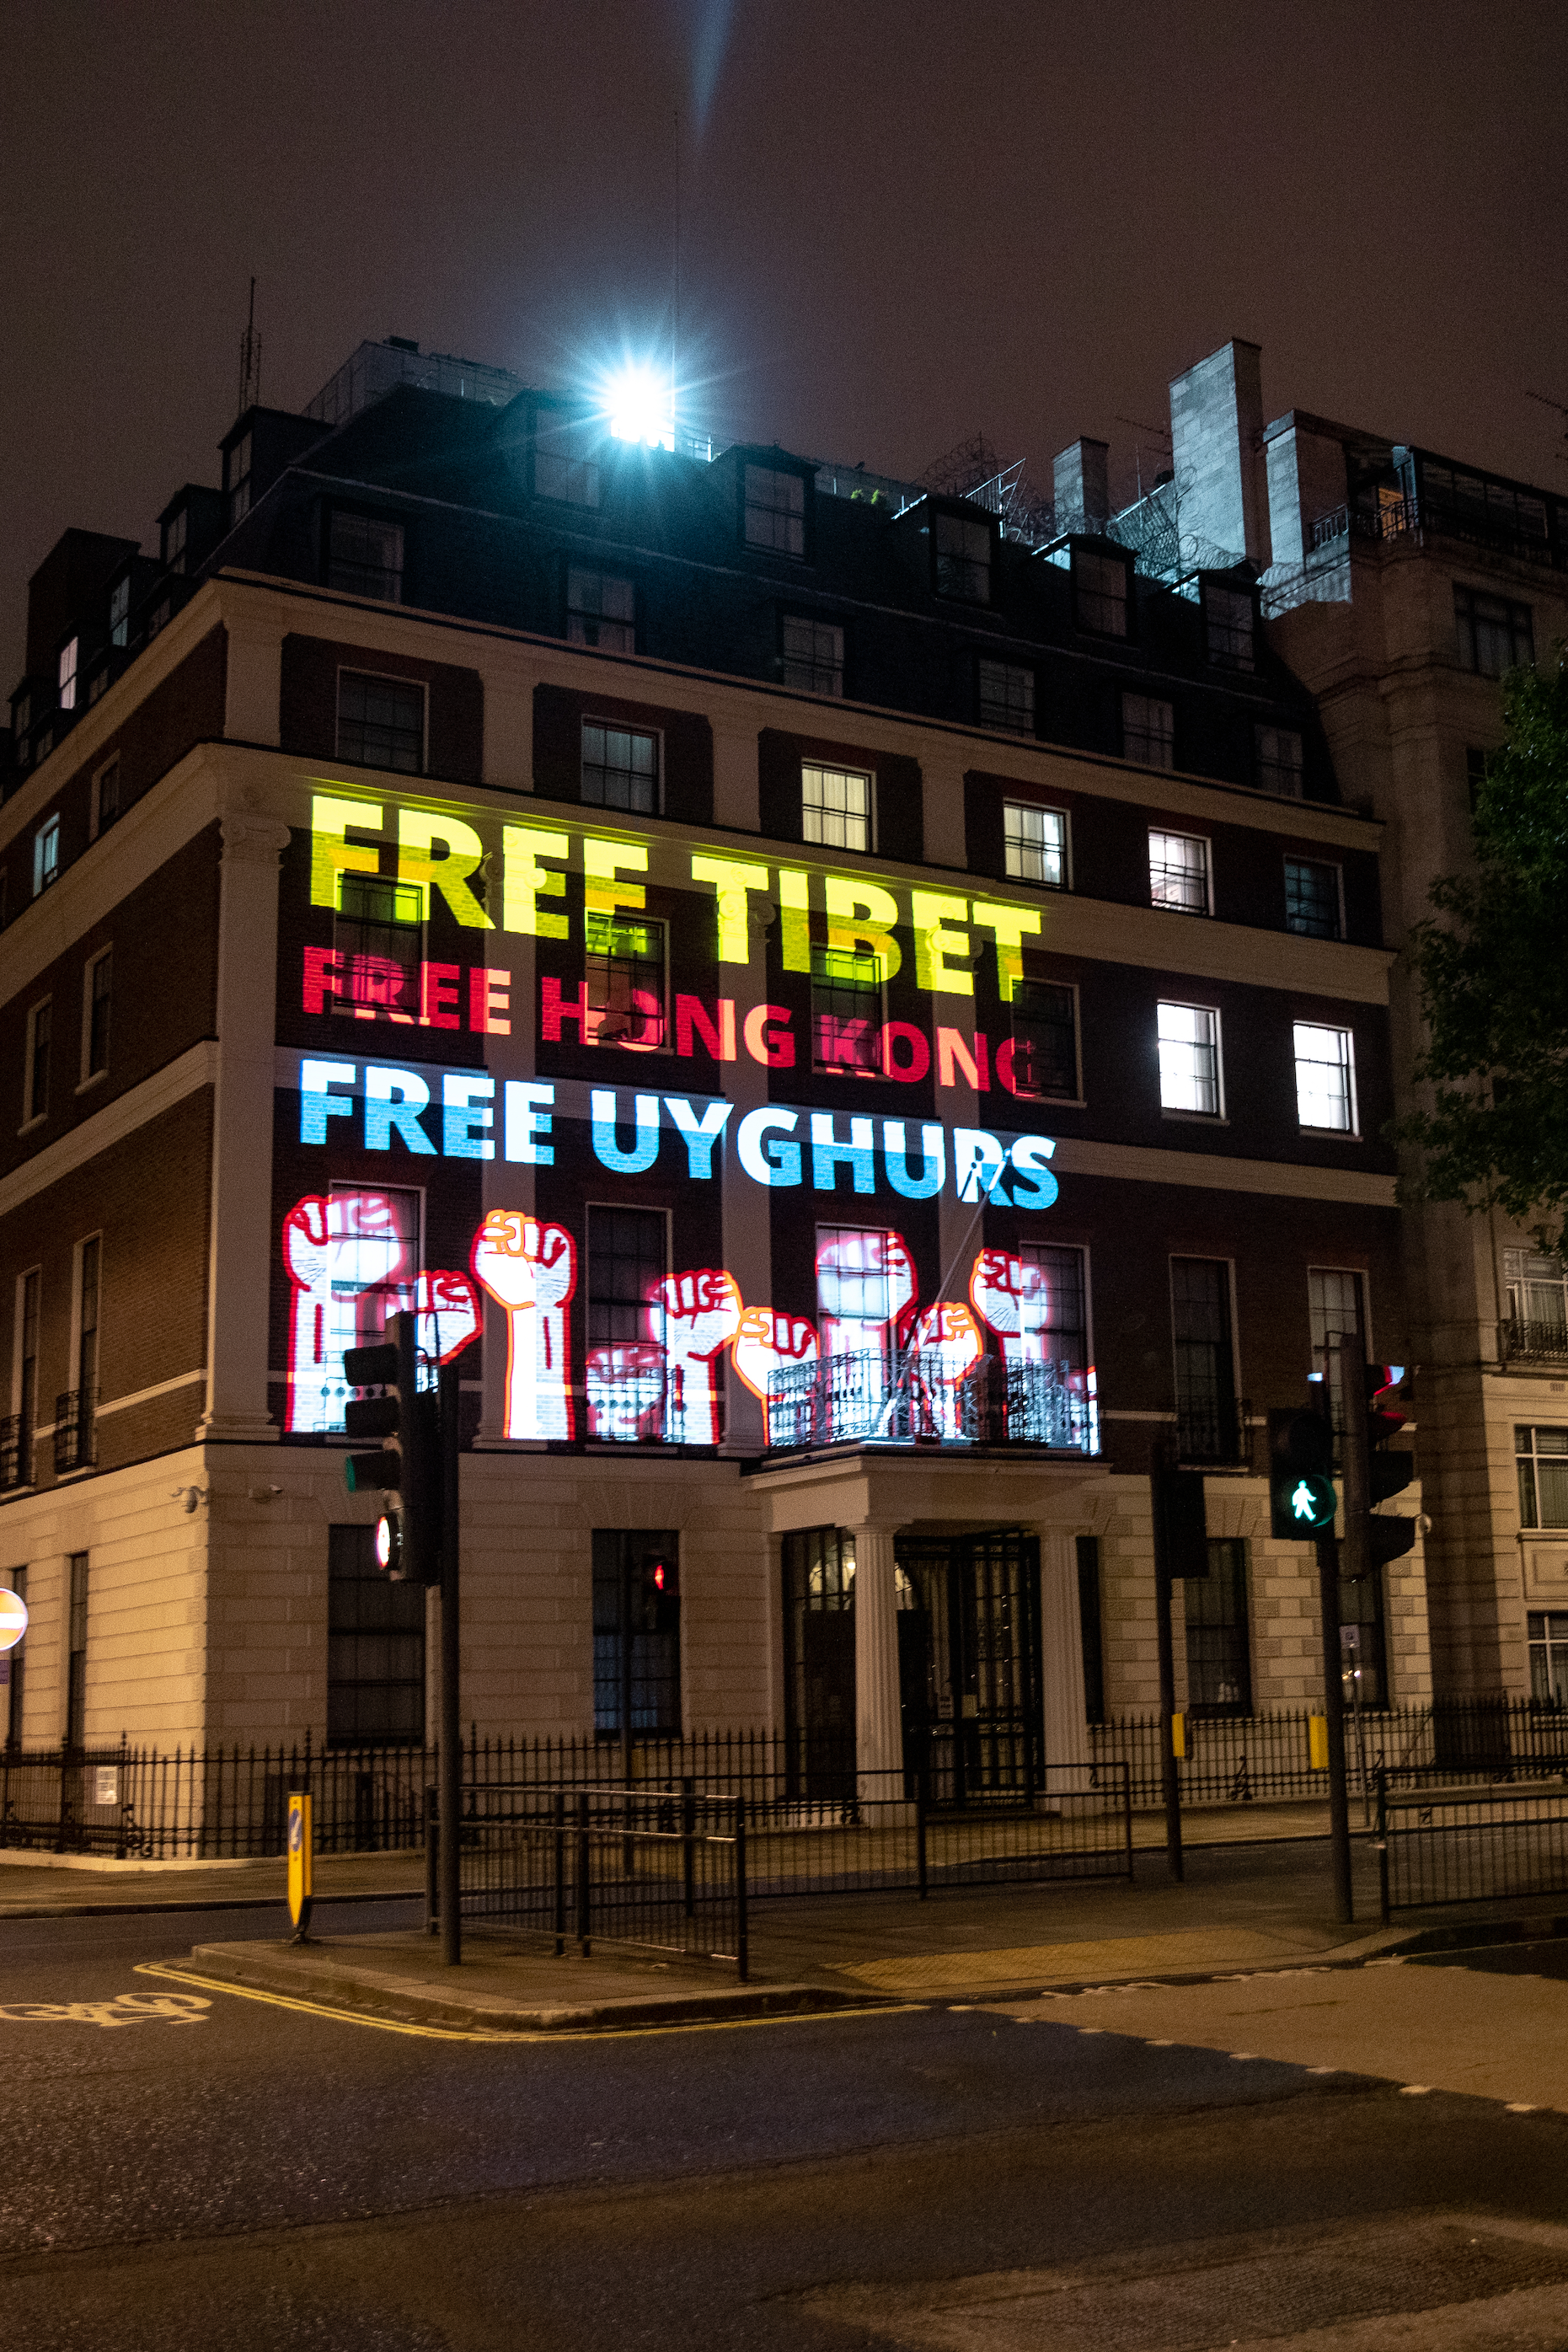 In July 2020 we organised a daring projection onto the Chinese Embassy in London - Free Tibet - Free Hong Kong - Free Uyghurs